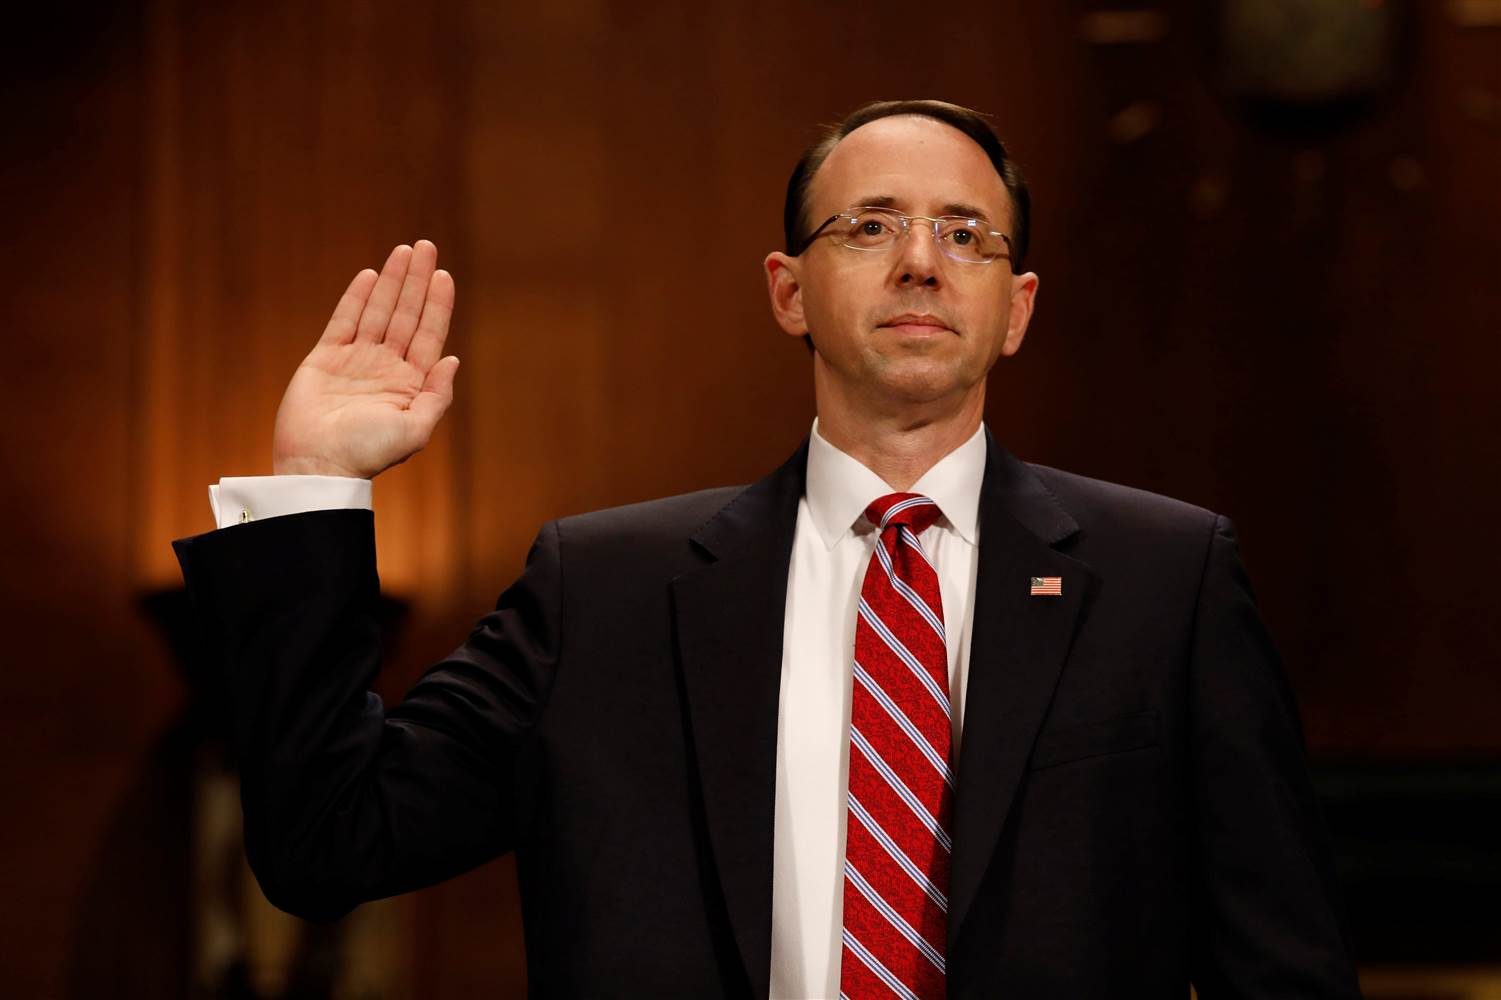 rod Rosenstein - American attorney serving as United States Deputy Attorney General since 2017. Prior to his current appointment, he served as a United States Attorney for the District of Maryland